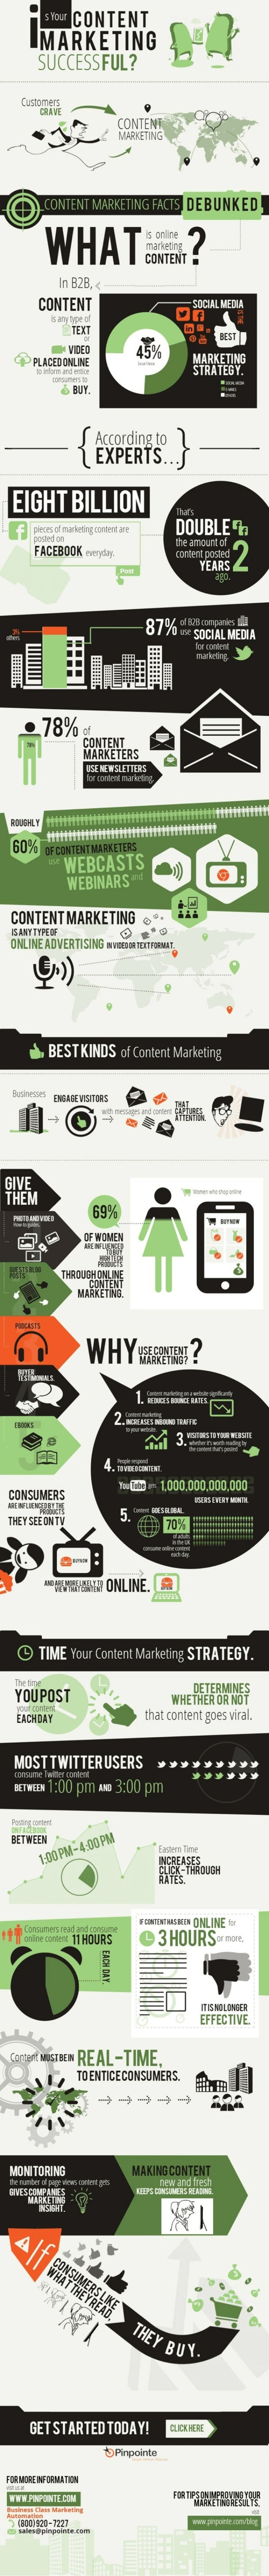 Infographic: Is Your Content Marketing Successful?